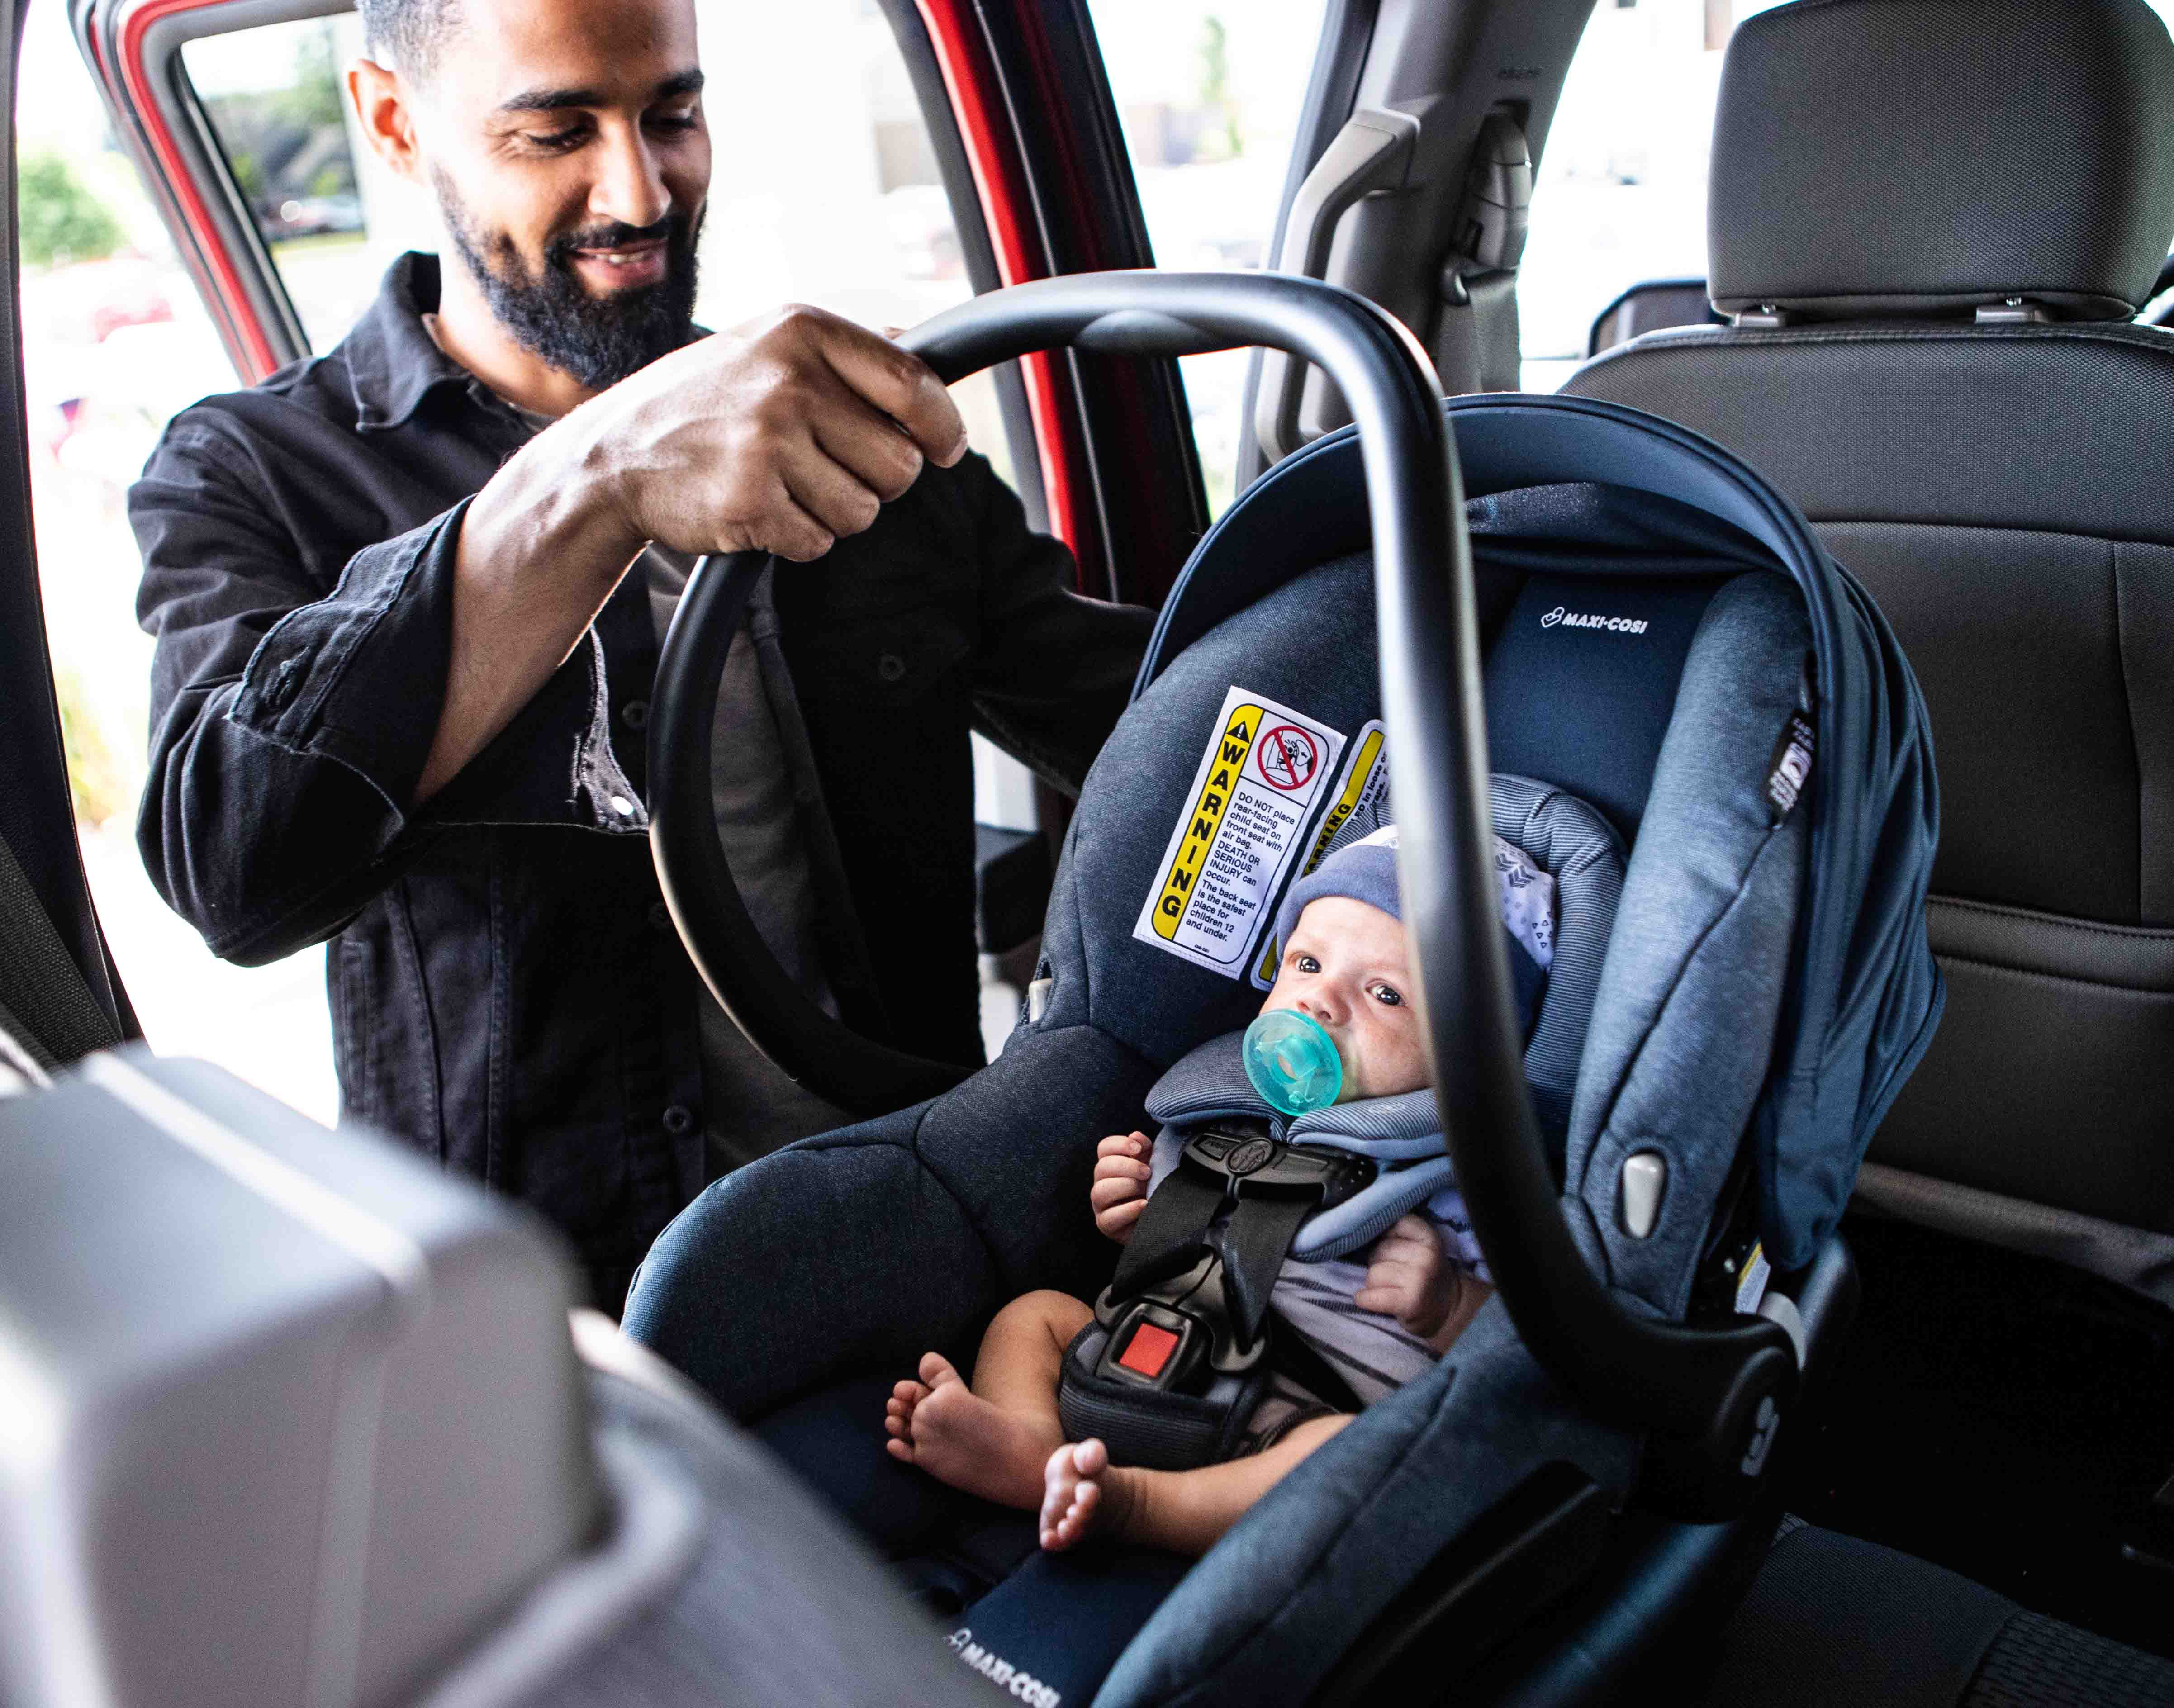 Dad placing infant car seat with baby in the car